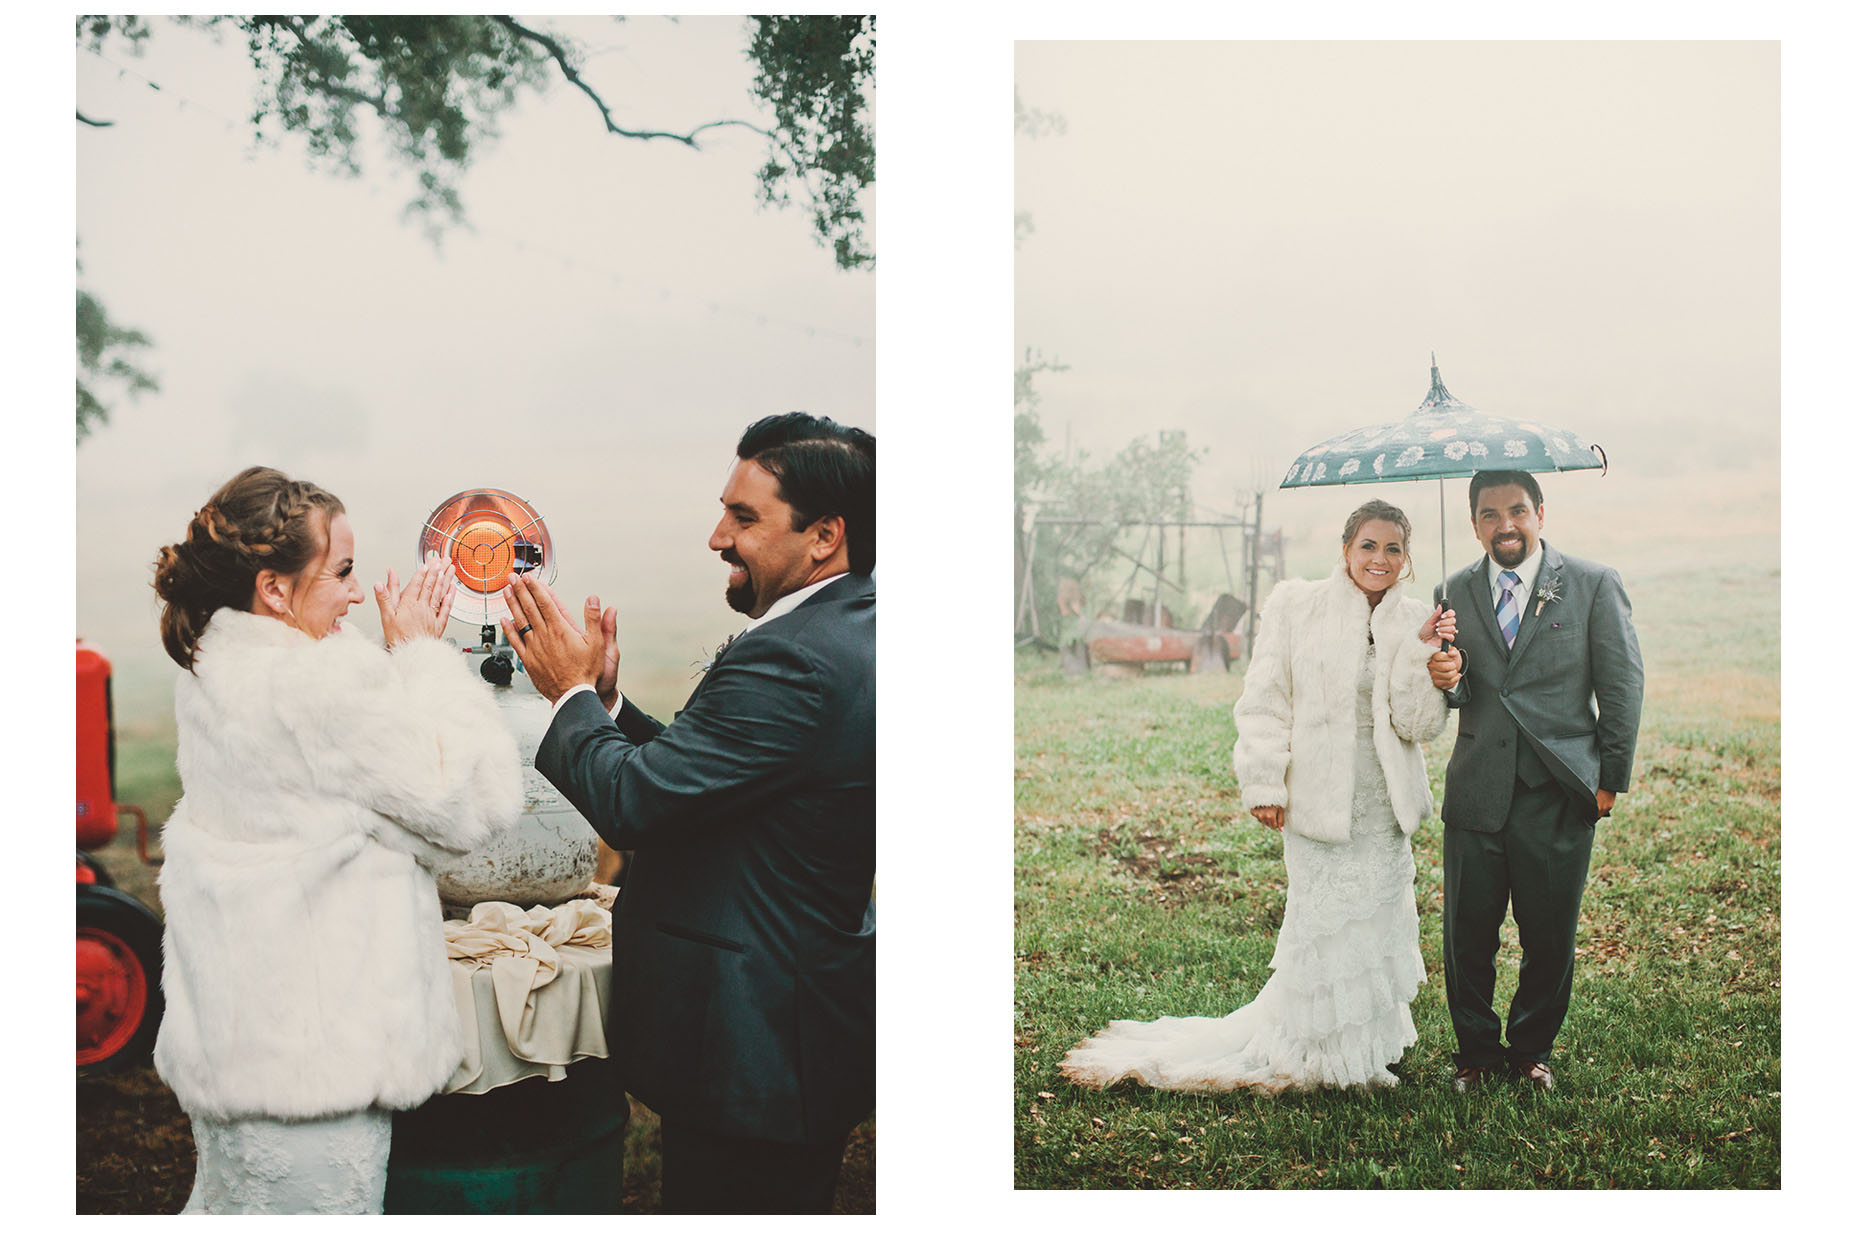 Colibriweddingphotographertopratedmostcreativeweddingphotogintemecula